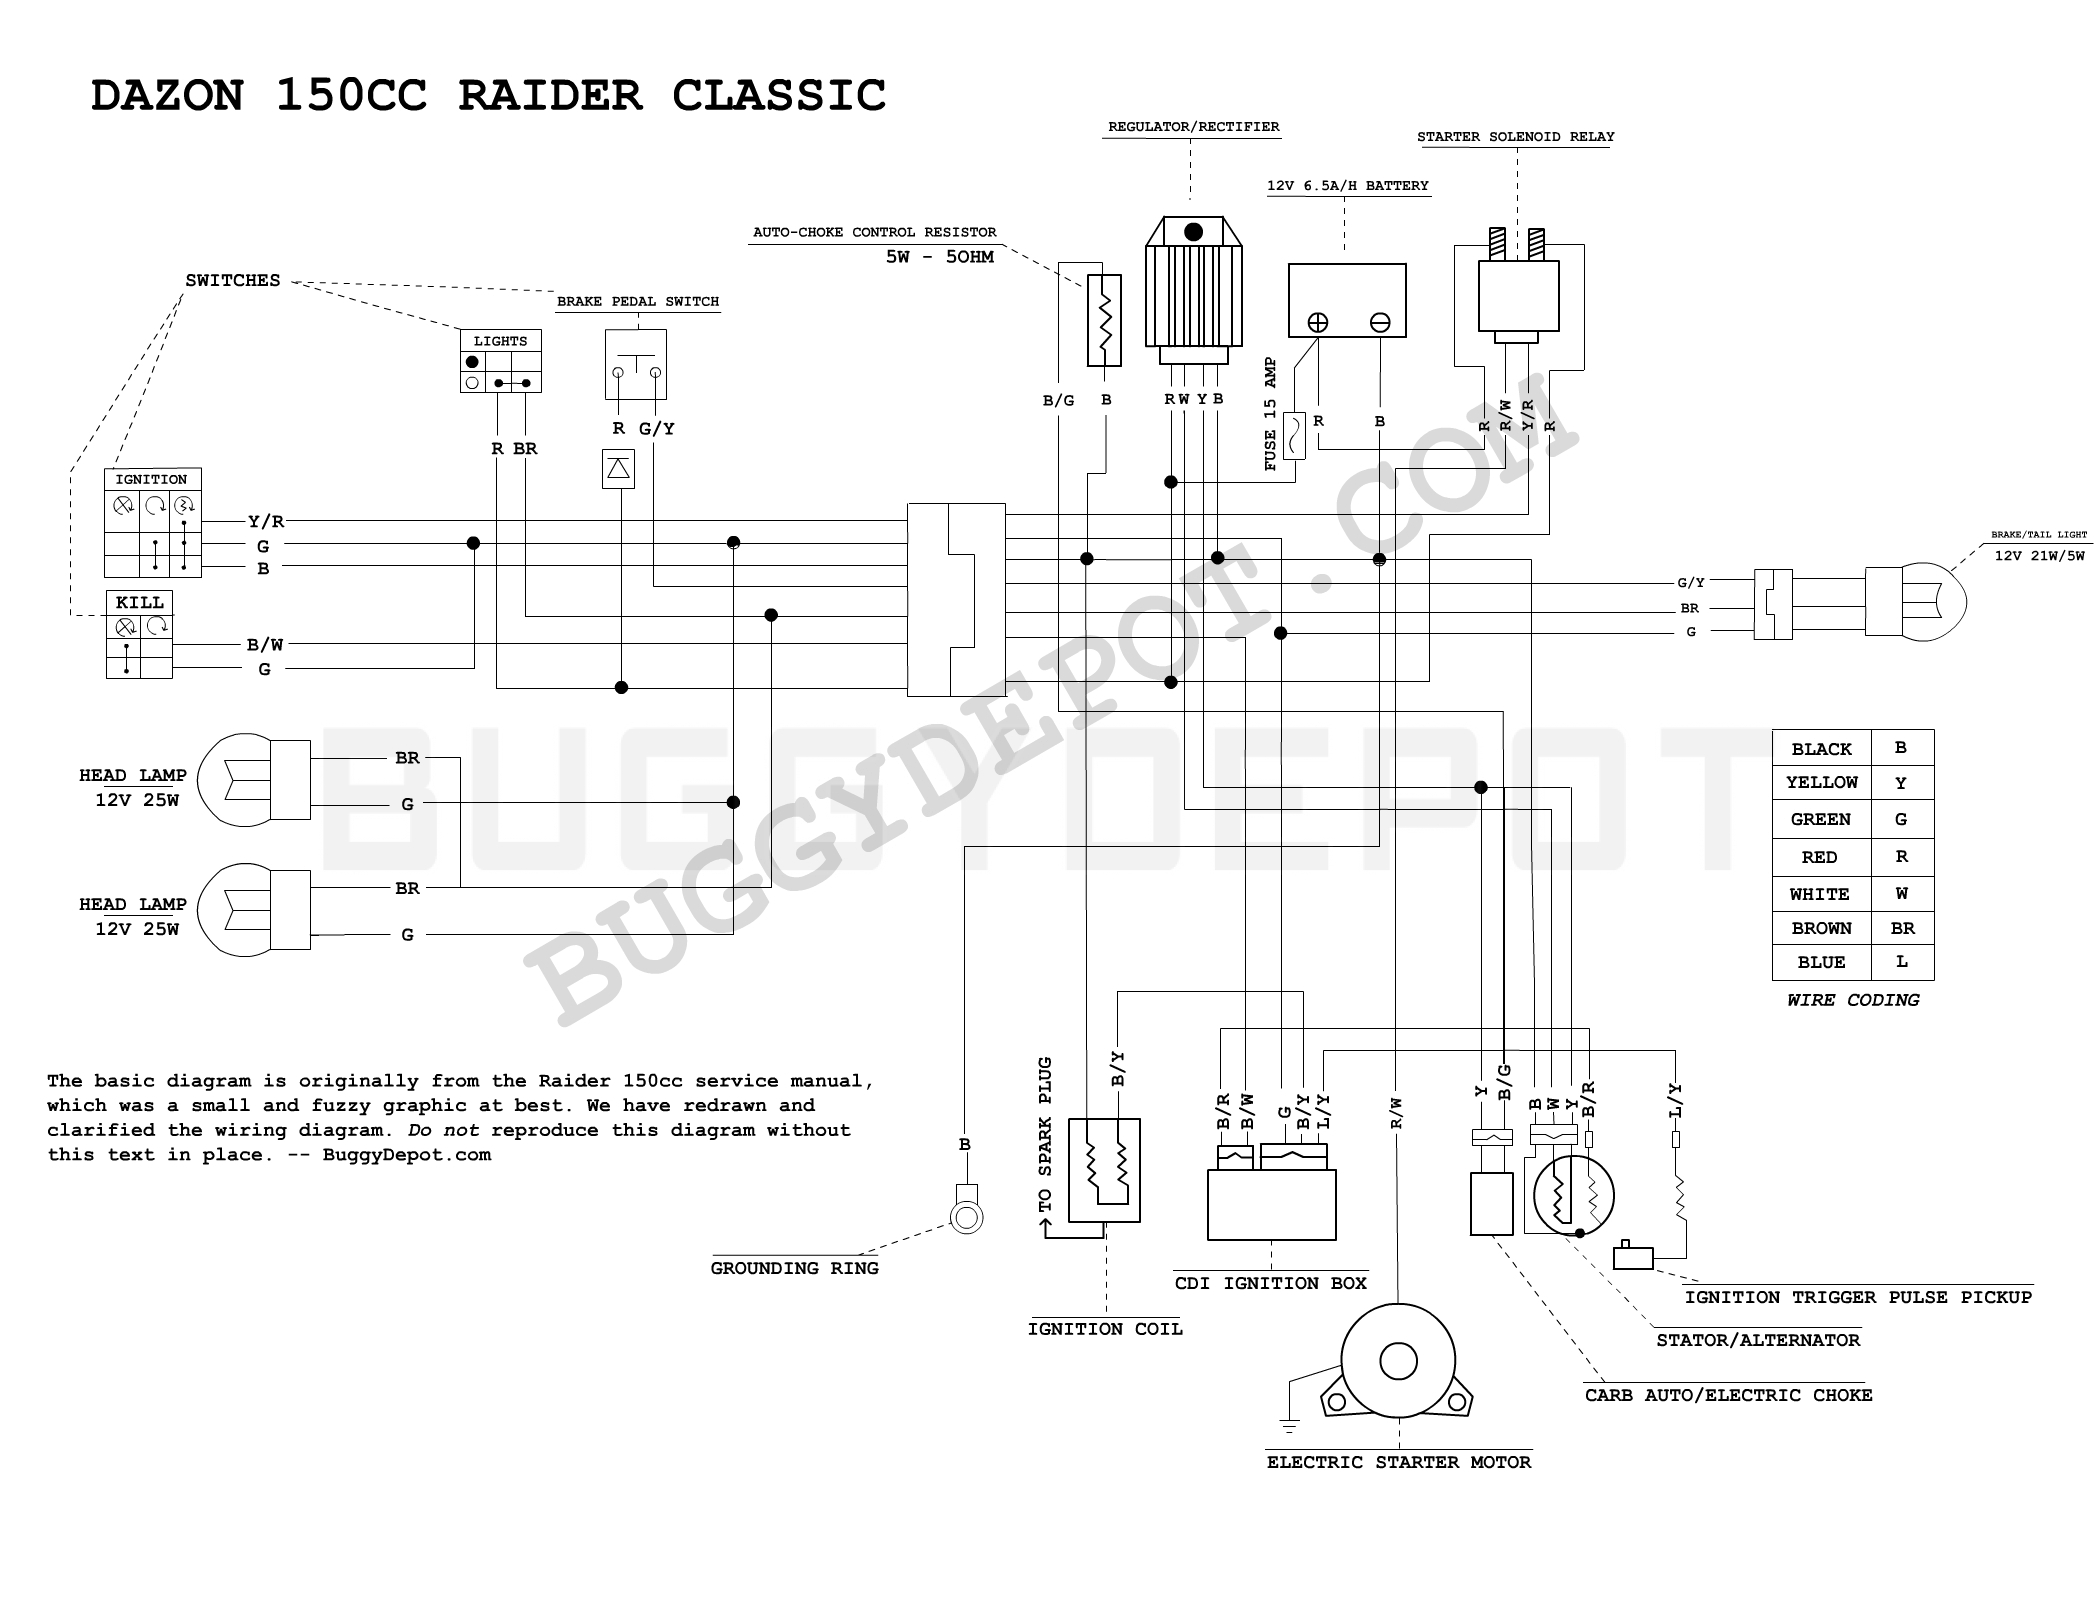 Baja Engine Diagram | Control Cables & Wiring Diagram on honda motorcycle carb diagrams, harley-davidson electric bike, 1999 harley-davidson wiring diagrams, harley-davidson v-twin engine diagrams, harley-davidson electrical system, harley-davidson fxr wiring-diagram, austin healey wiring diagrams, harley-davidson headlight wiring diagram, harley-davidson shovelhead wiring-diagram, harley-davidson wiring harness diagram, plymouth wiring diagrams, triumph motorcycle wiring diagrams, harley-davidson ultra classic wiring diagram, harley-davidson wiring connectors, harley-davidson ignition wiring diagram, harley-davidson touring wiring-diagram, harley-davidson wiring manual, harley-davidson softail wiring diagram, harley davidson schematics and diagrams, harley-davidson flh wiring-diagram,